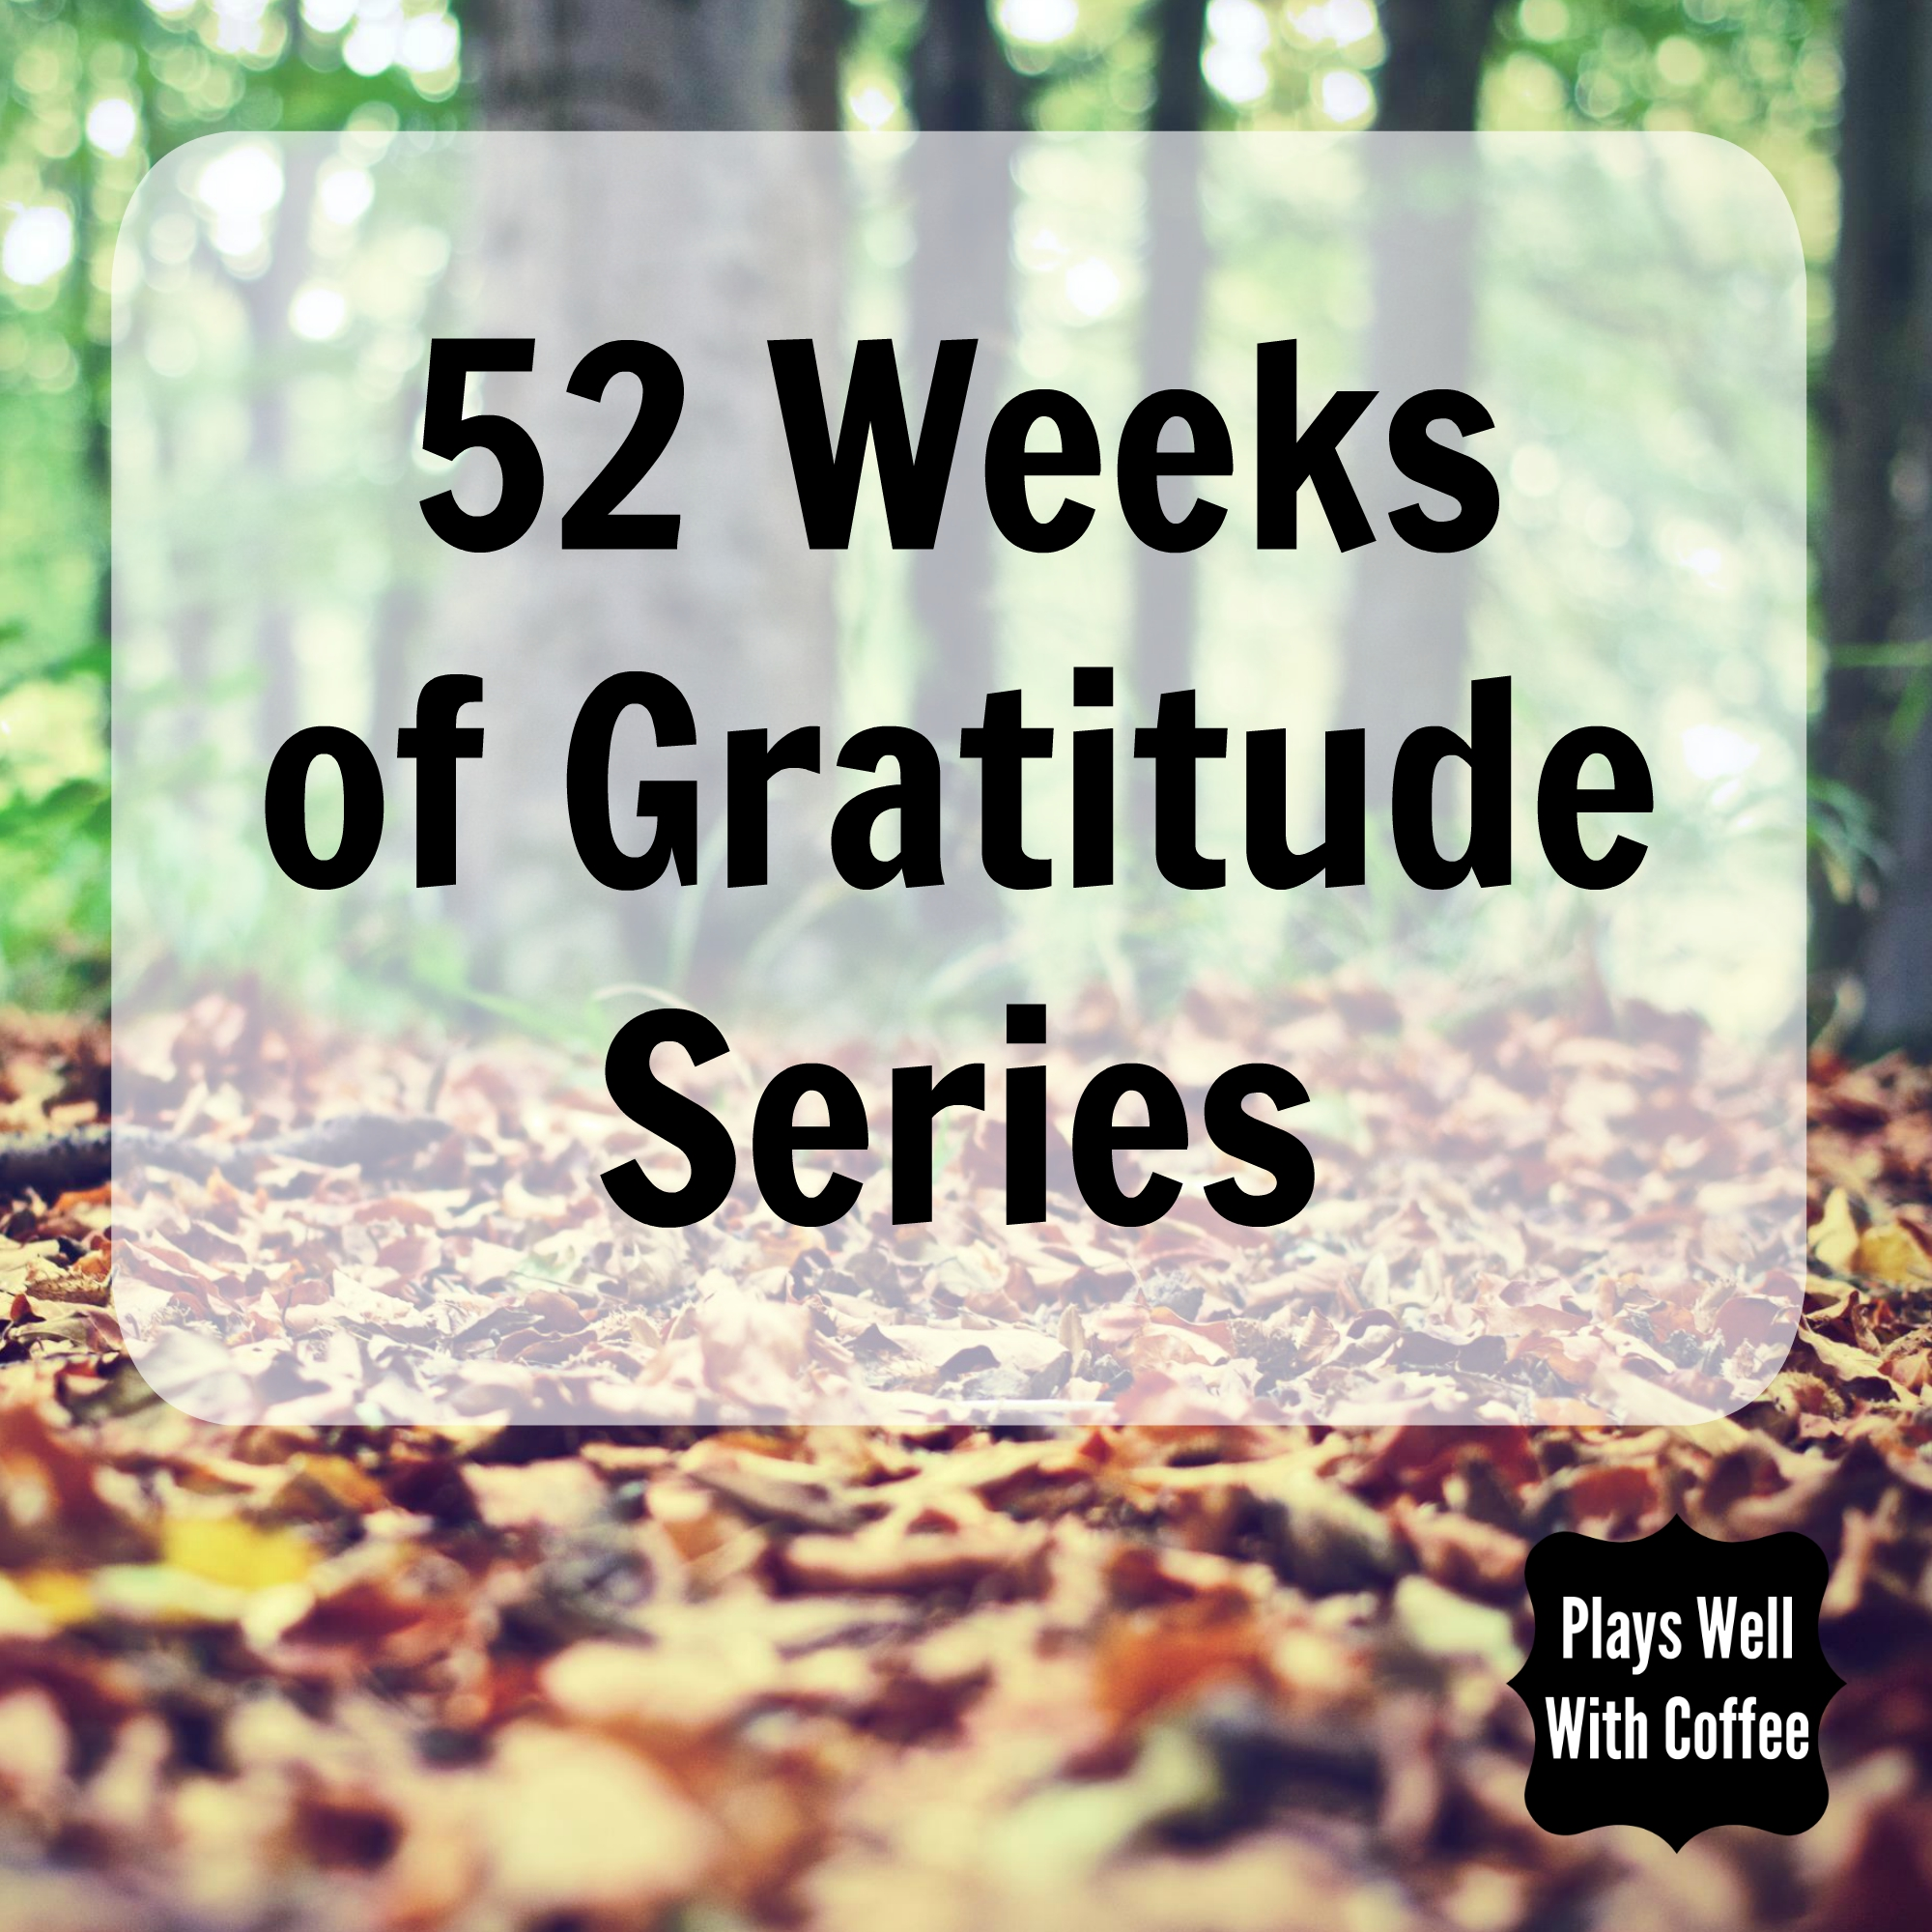 52 Weeks of Gratitude